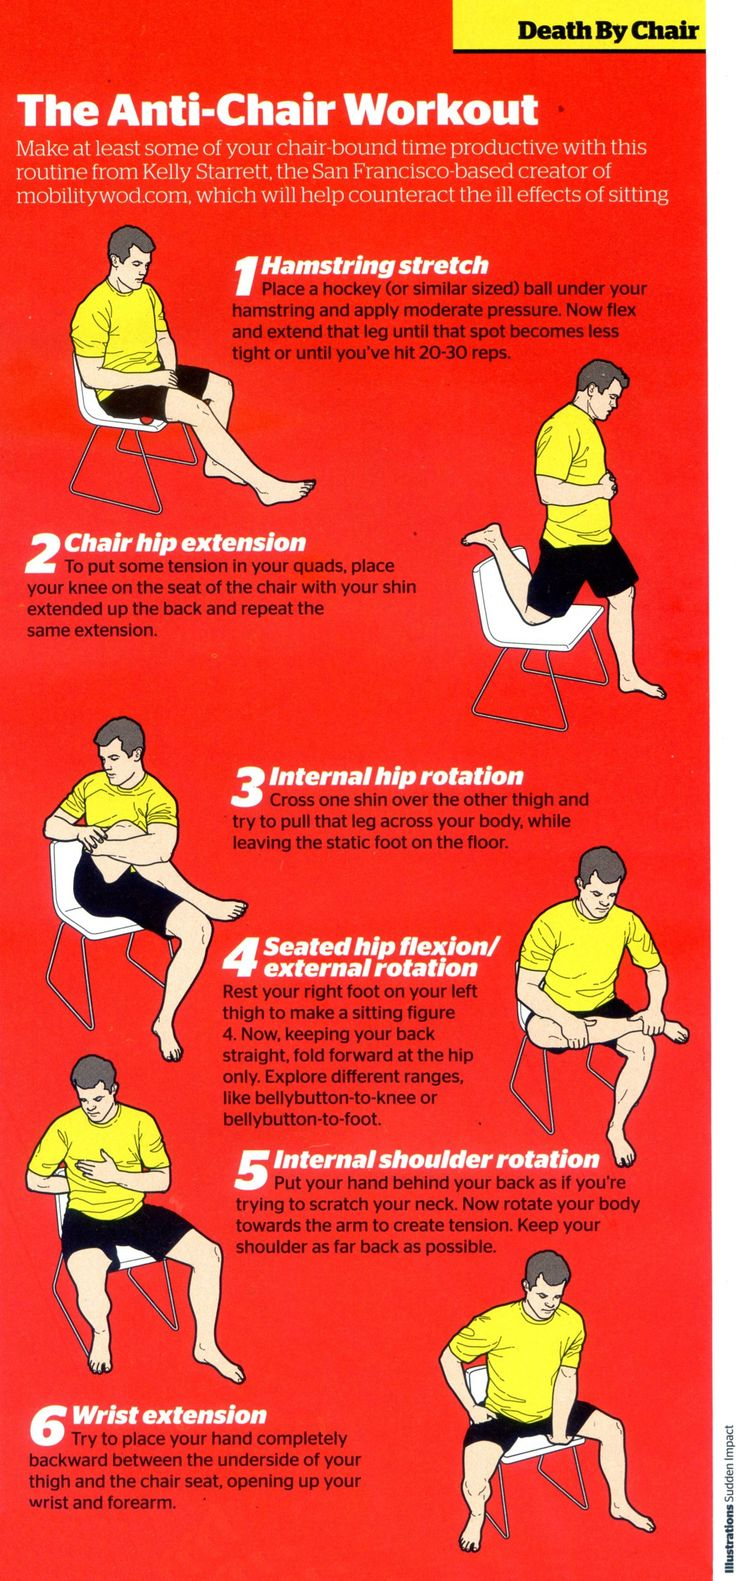 [STRETCHES FOR OFFICE WORKERS] The Anti-Chair Workout (Men's Fitness Magazine UK - September 2011): (1) Hamstring stretch ,  (2) Chair hip extension,  (3) Internal hip rotation,  (4) Seated hip flexion/external rotation,  (5) Internal shoulder rotation, and  (6) Wrist extension.